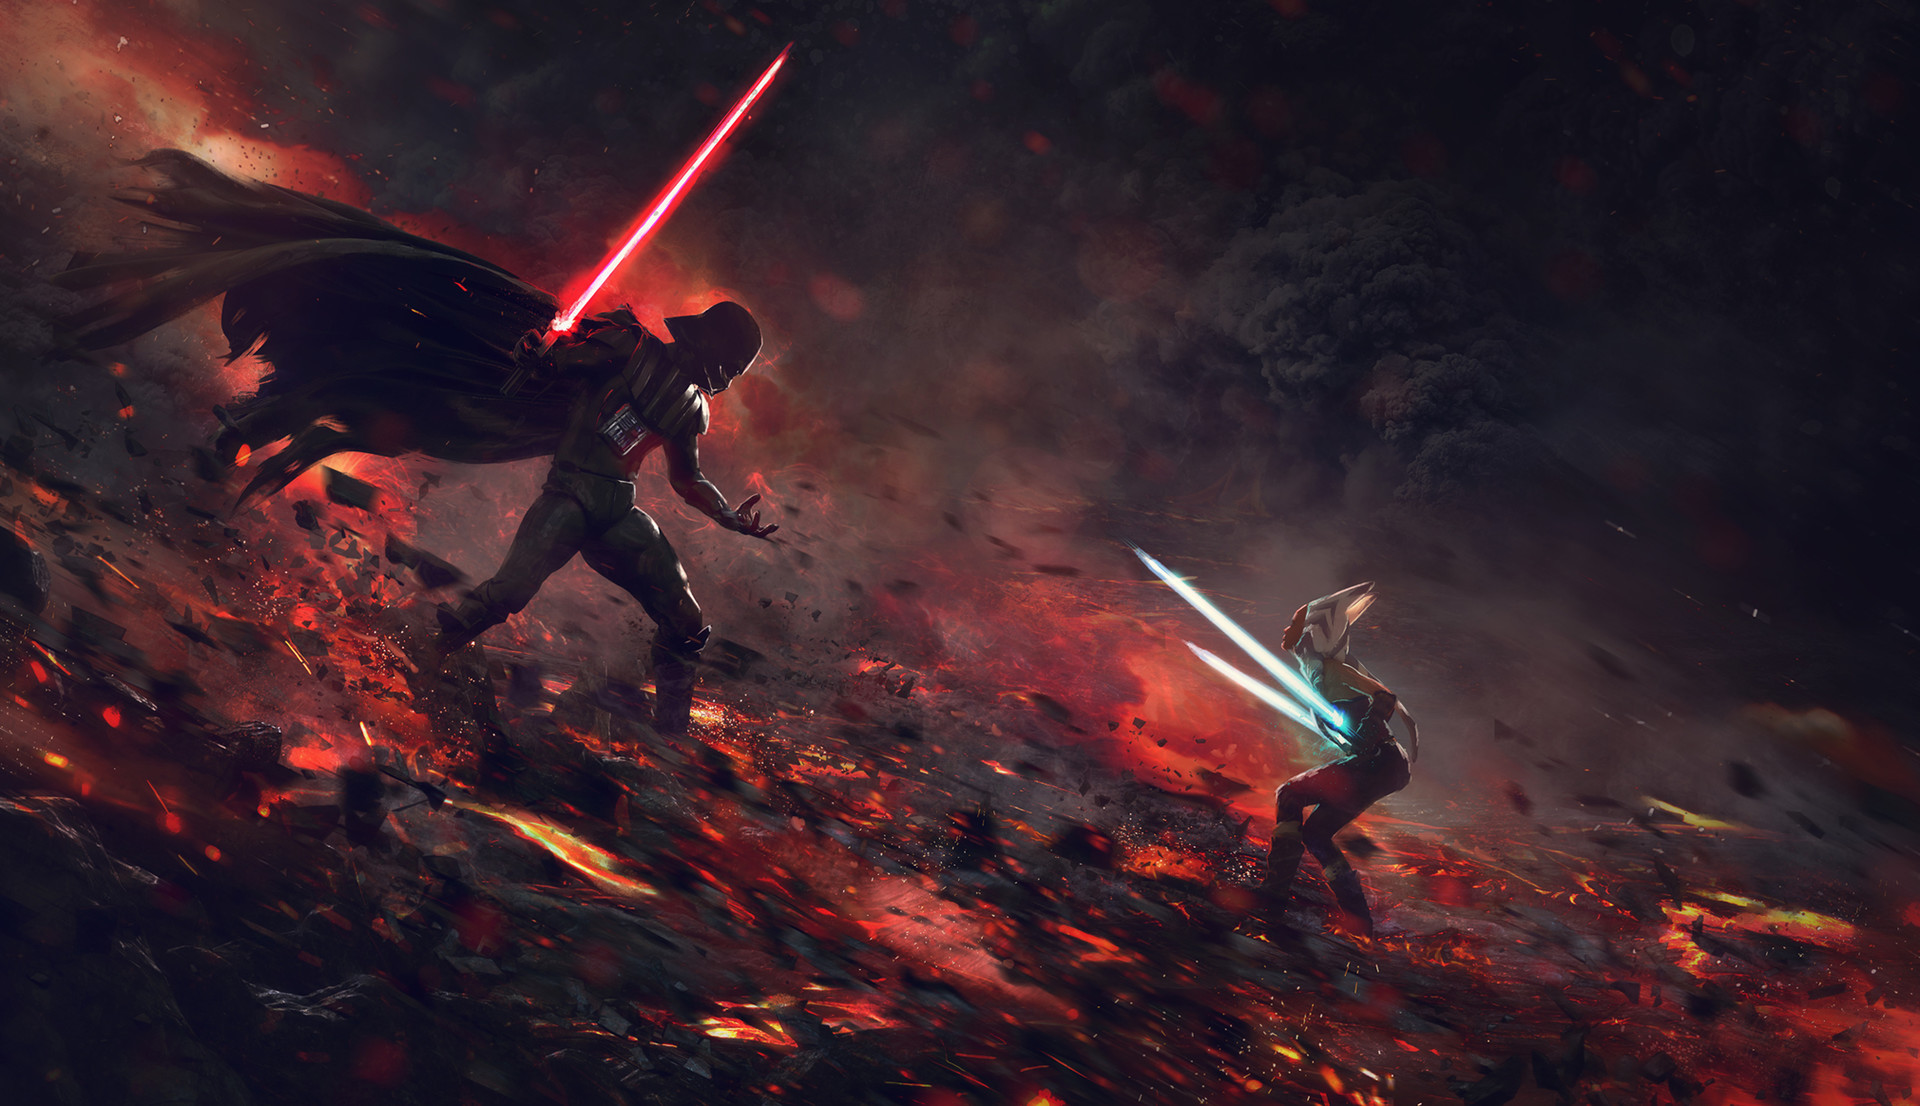 Guillem h pongiluppi guillemhp darth vader vs ahsoka